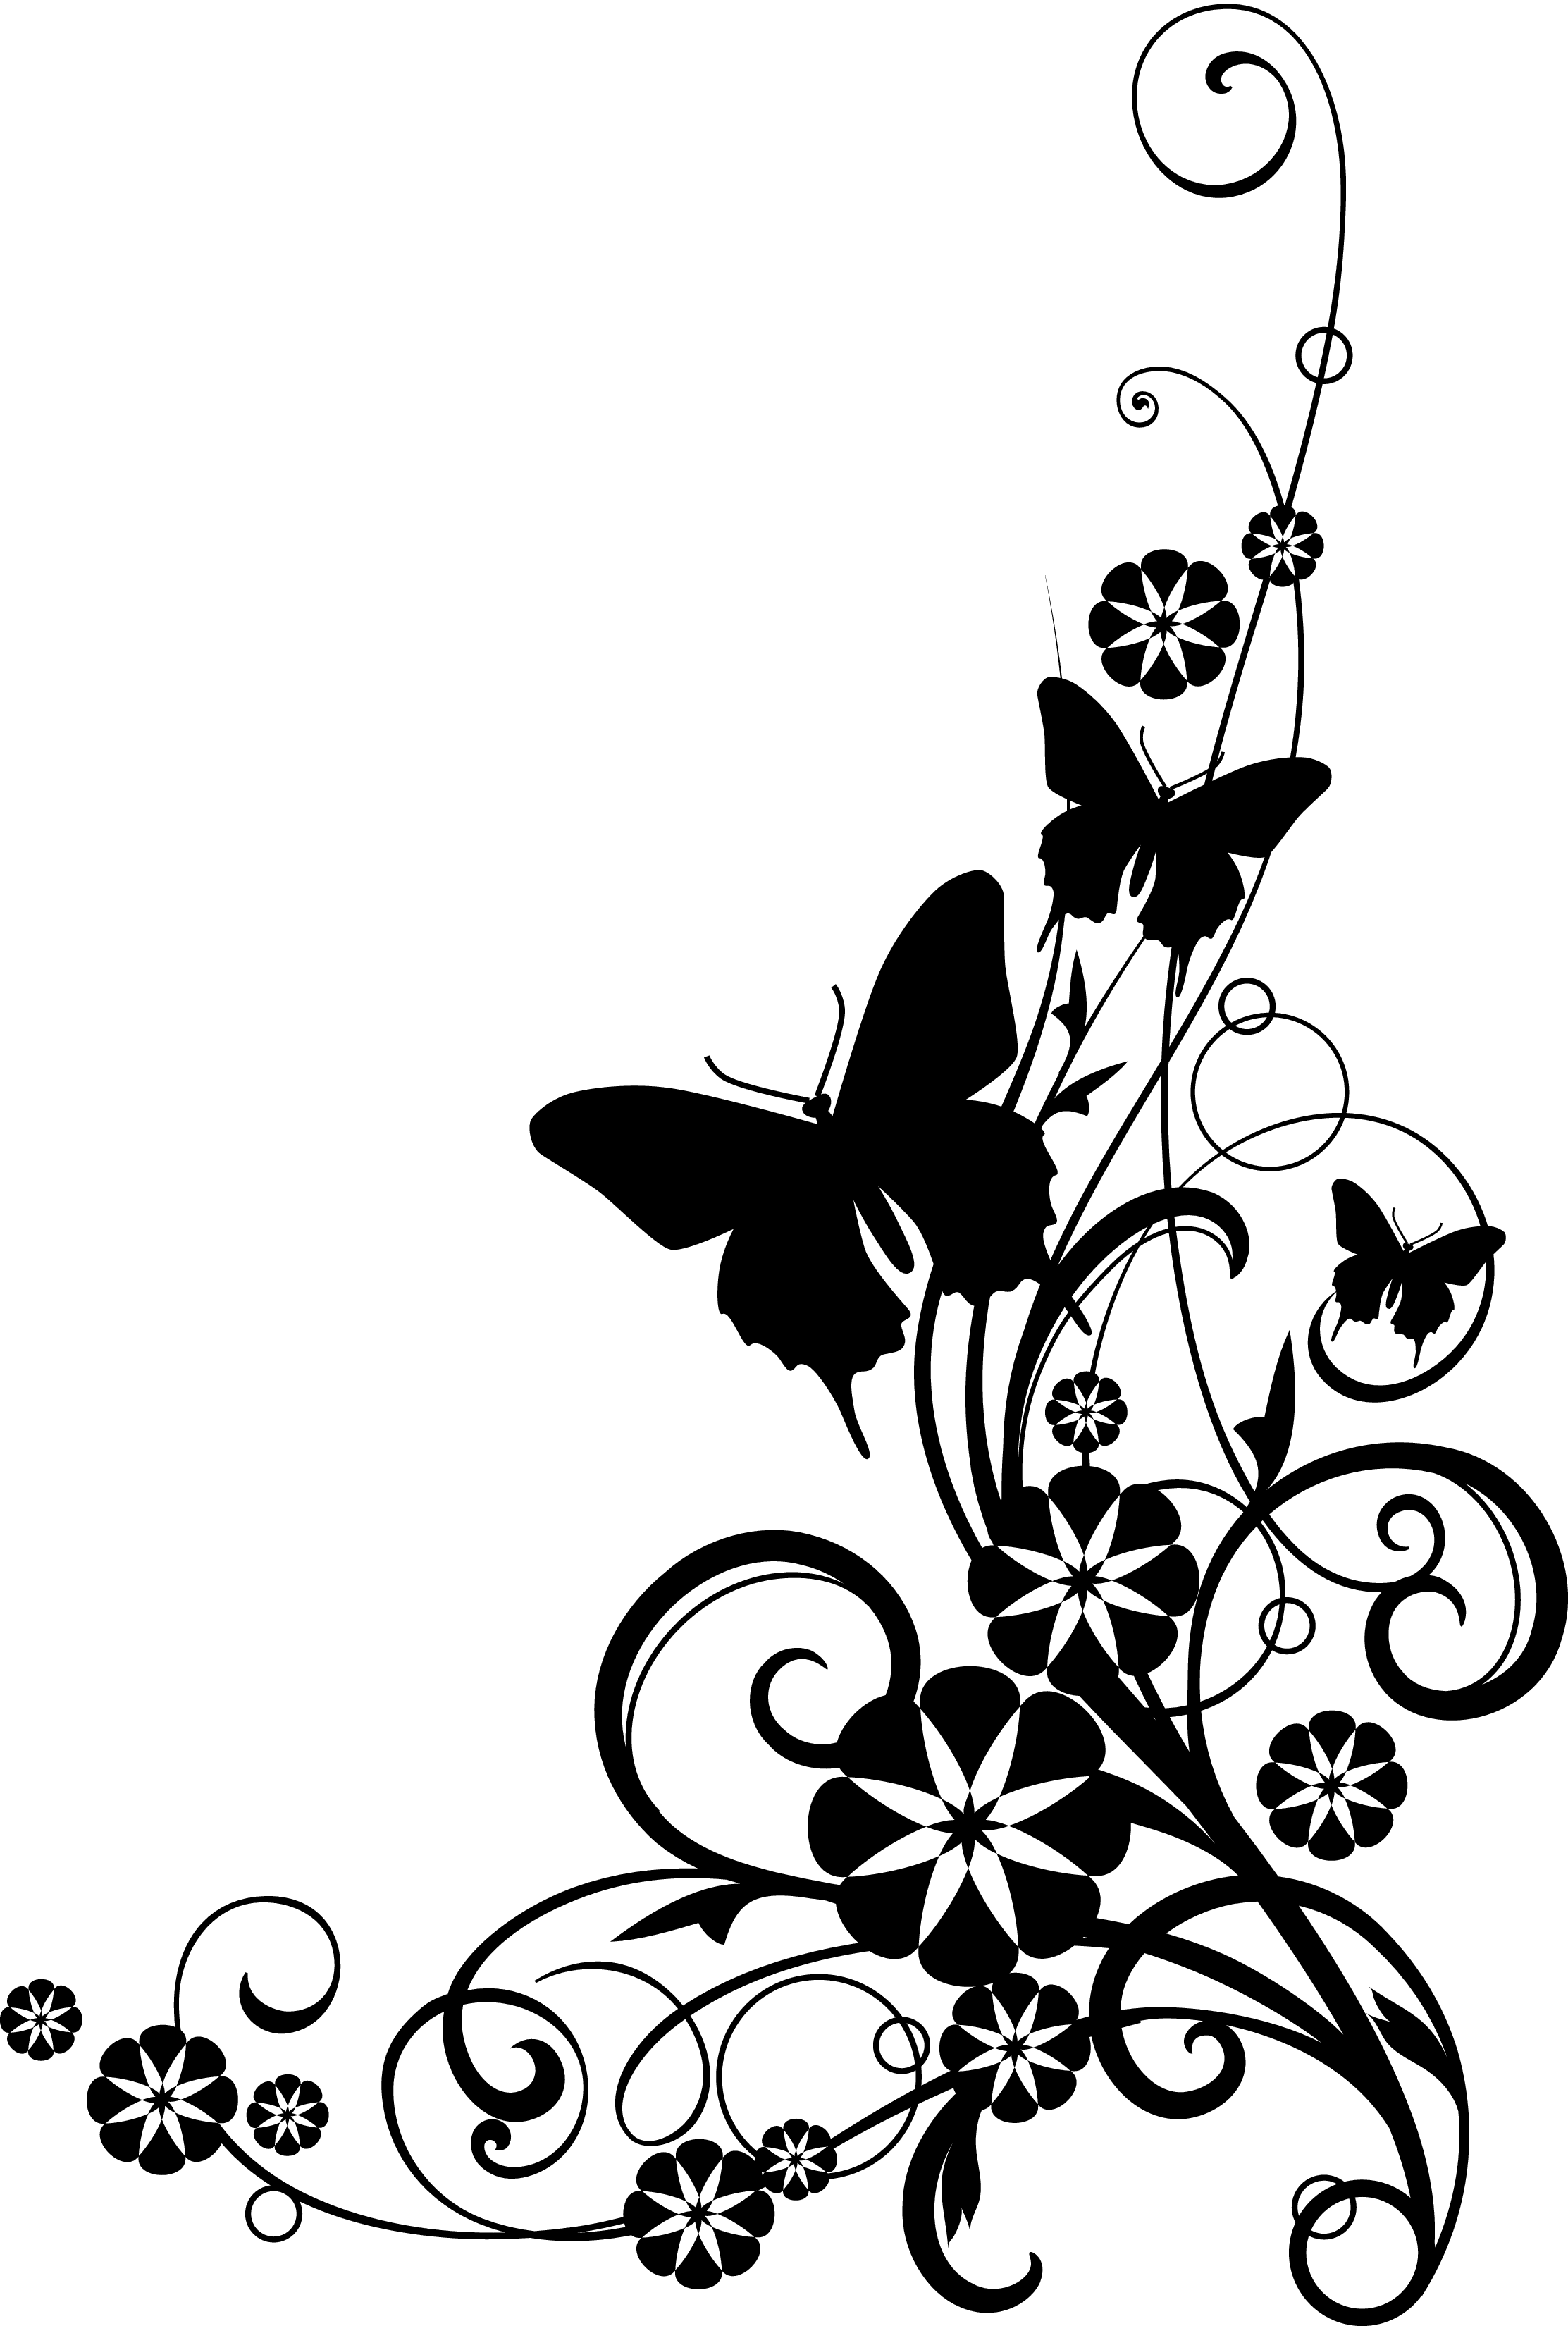 Cross clipart border svg black and white download 8c59ec4066e54d3f207a7d2aa92e8274_vine-clipart-black-and-white ... svg black and white download